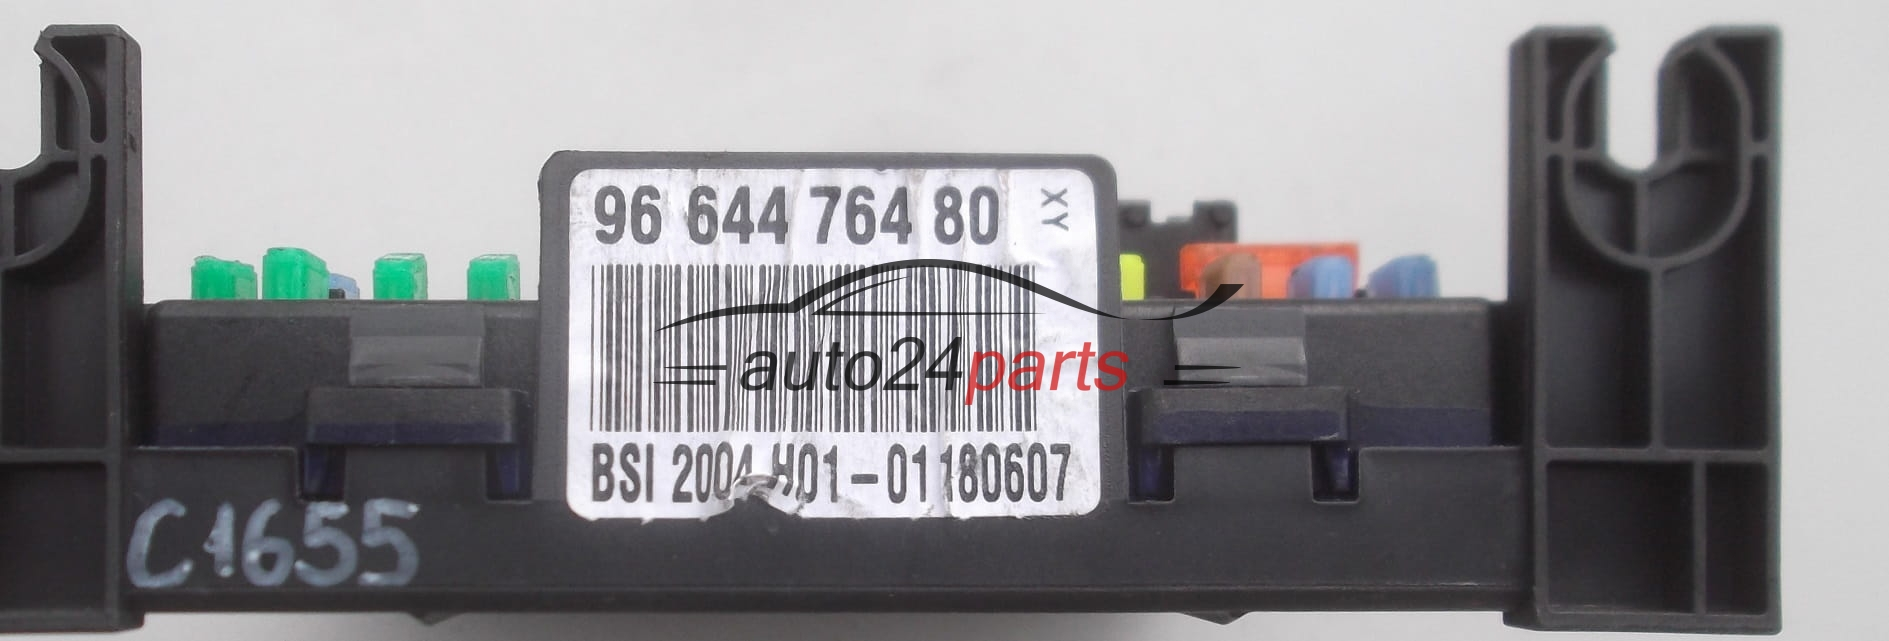 FUSE RELAY BOX ELECTRICAL COMFORT CONTROL MODULE BODY PEUGEOT 307 96 644  764 80, 9664476480, 281215447A